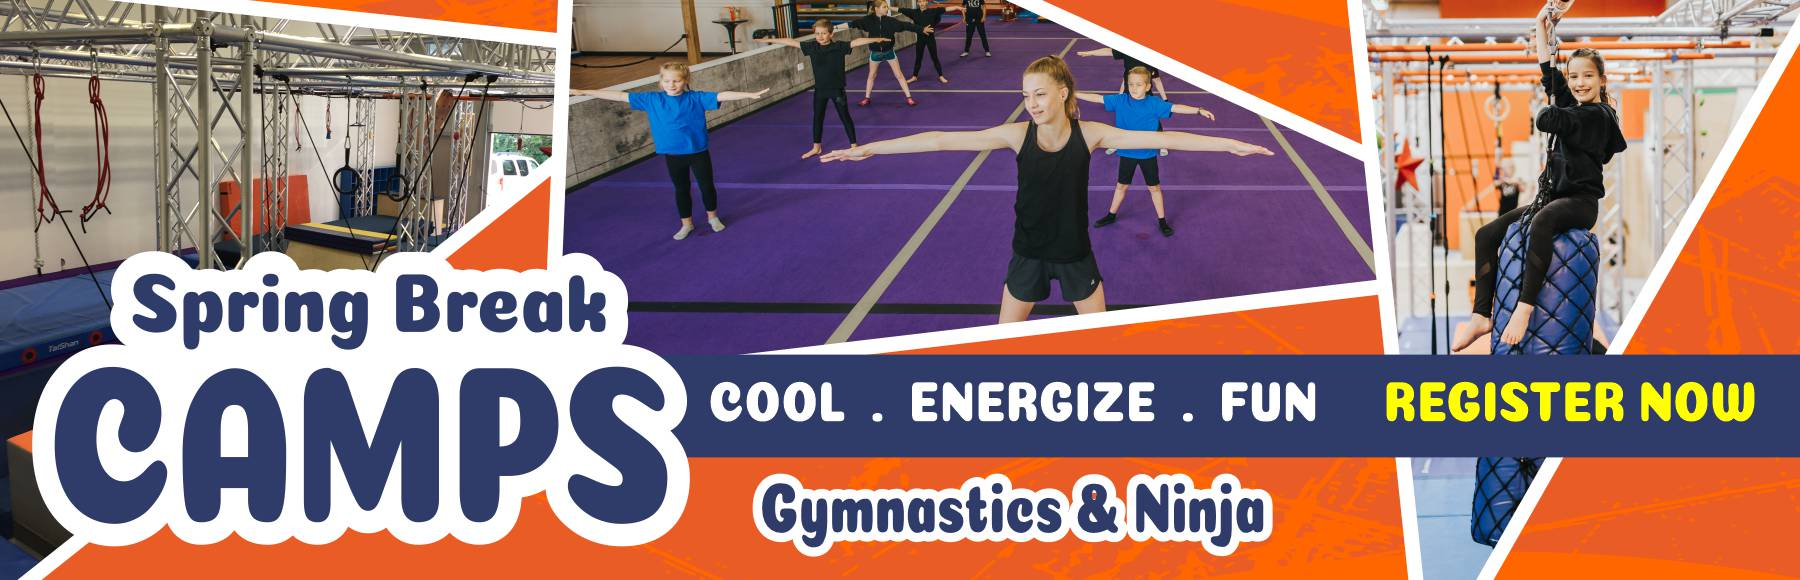 Chilliwack gymnastics spring break camps